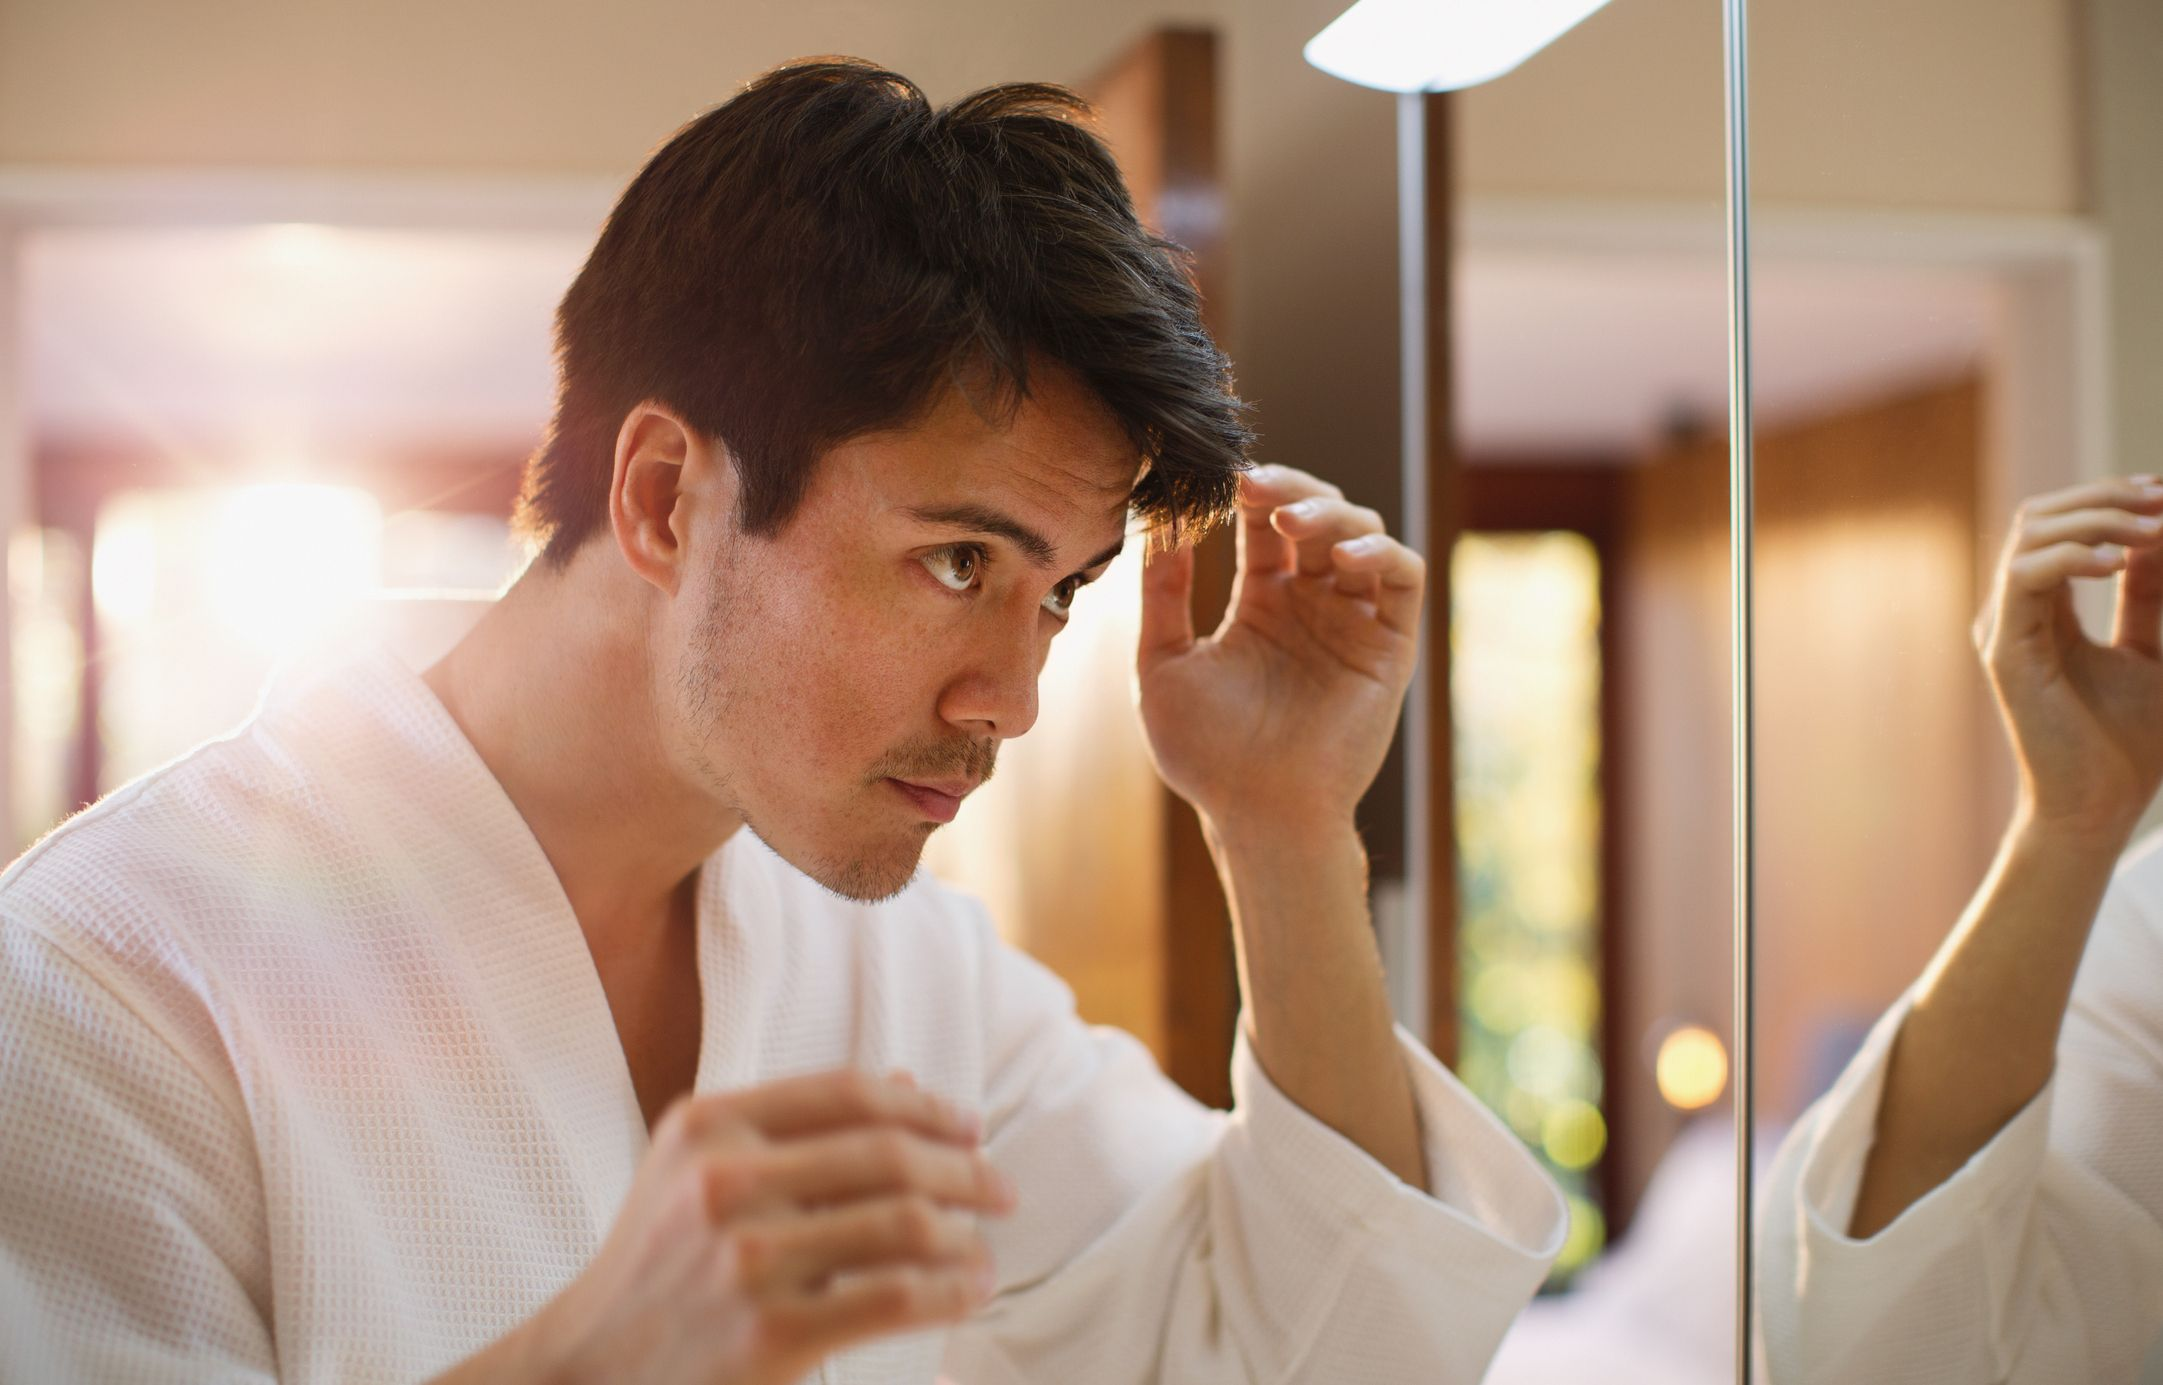 How to deal with receding hairline naturally